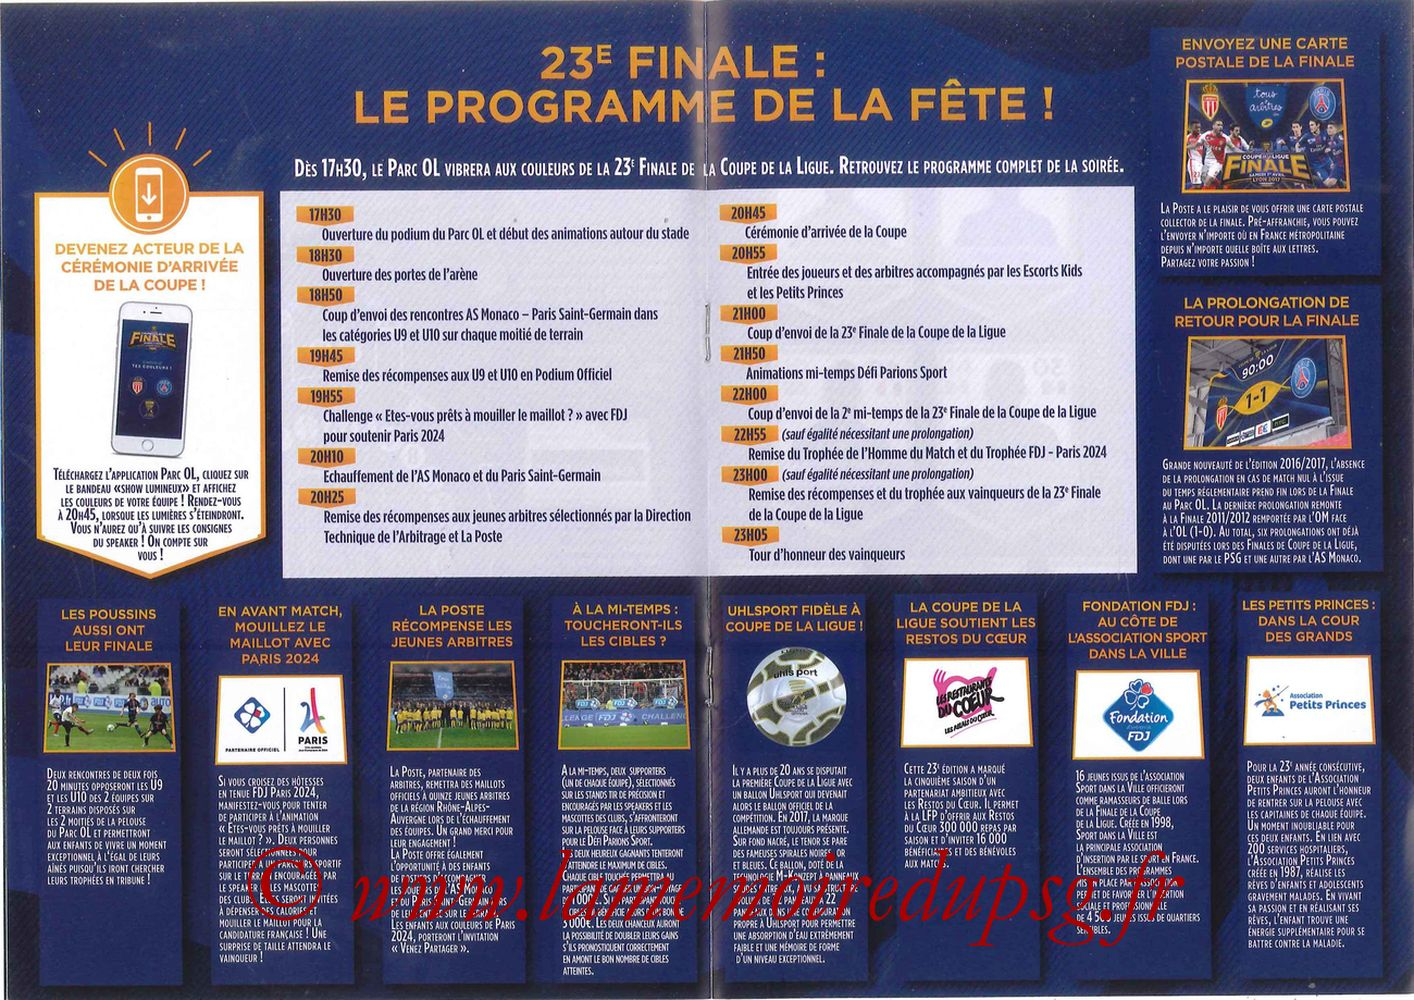 2017-04-01  Monaco-PSG (Finale CL à Lyon, Programme officiel) - Pages 08 et 09